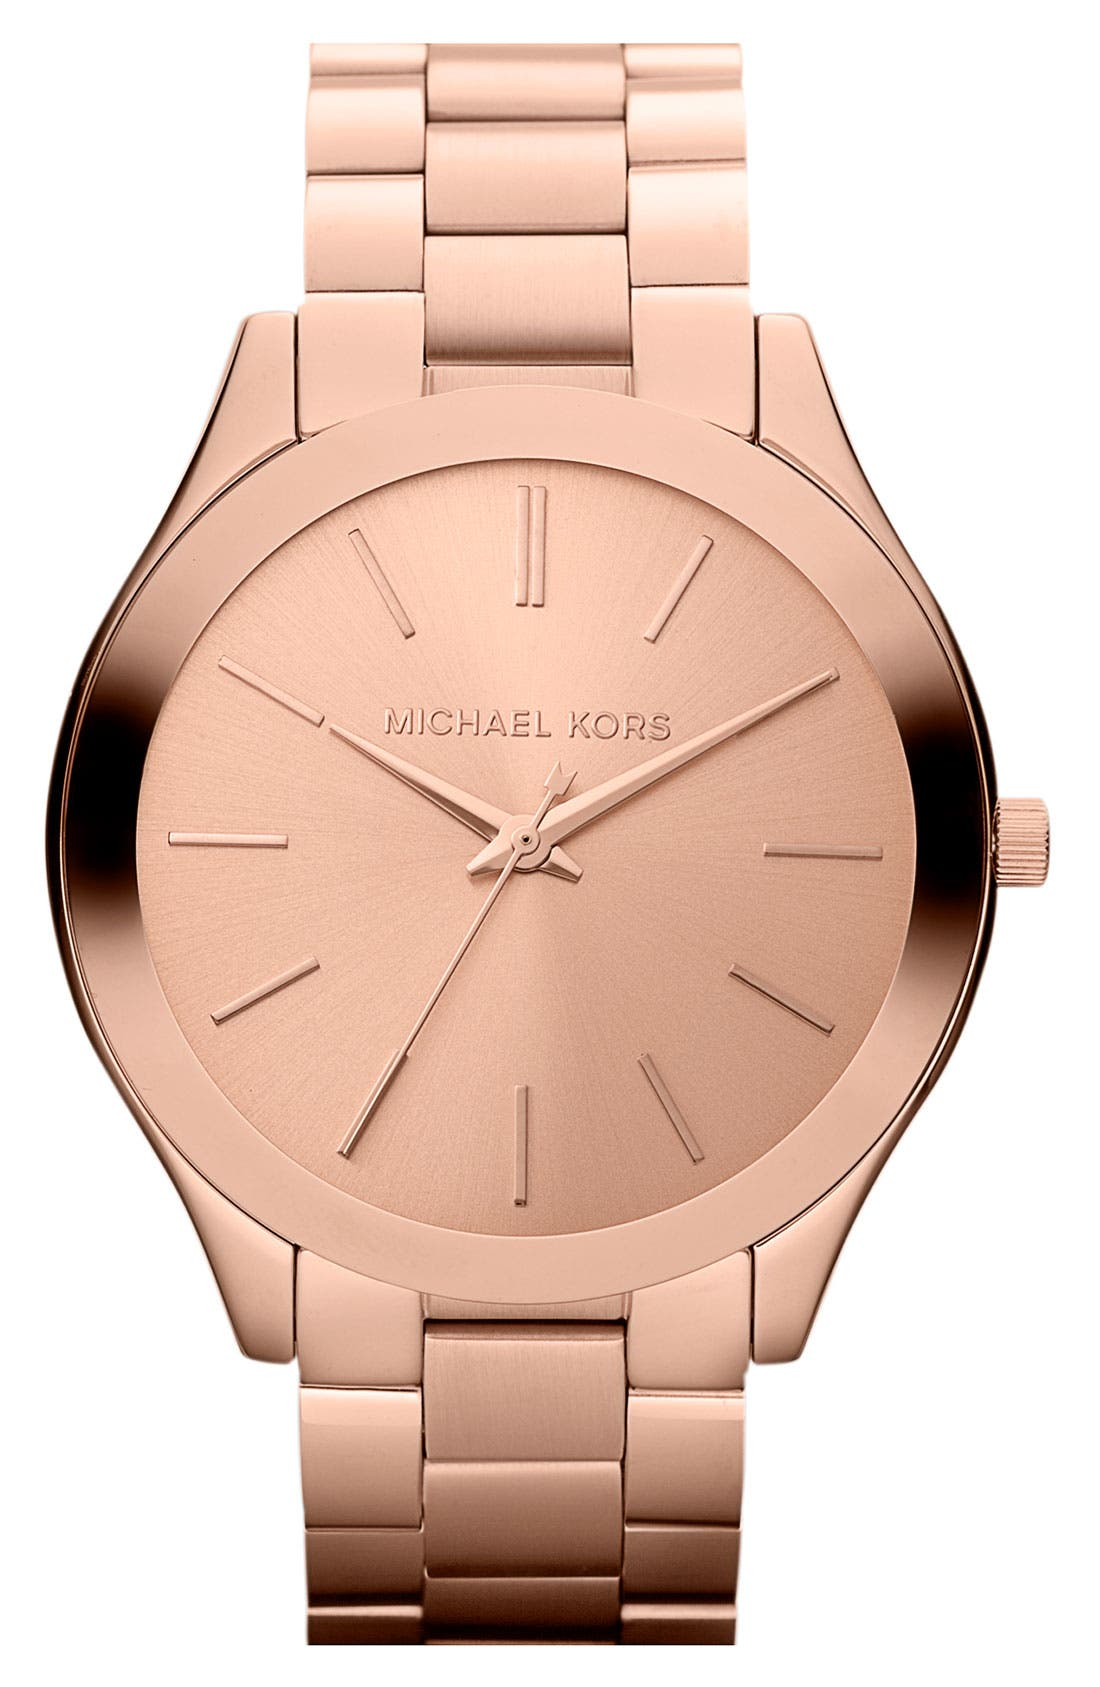 Main Image - Michael Kors 'Slim Runway' Bracelet Watch, 42mm